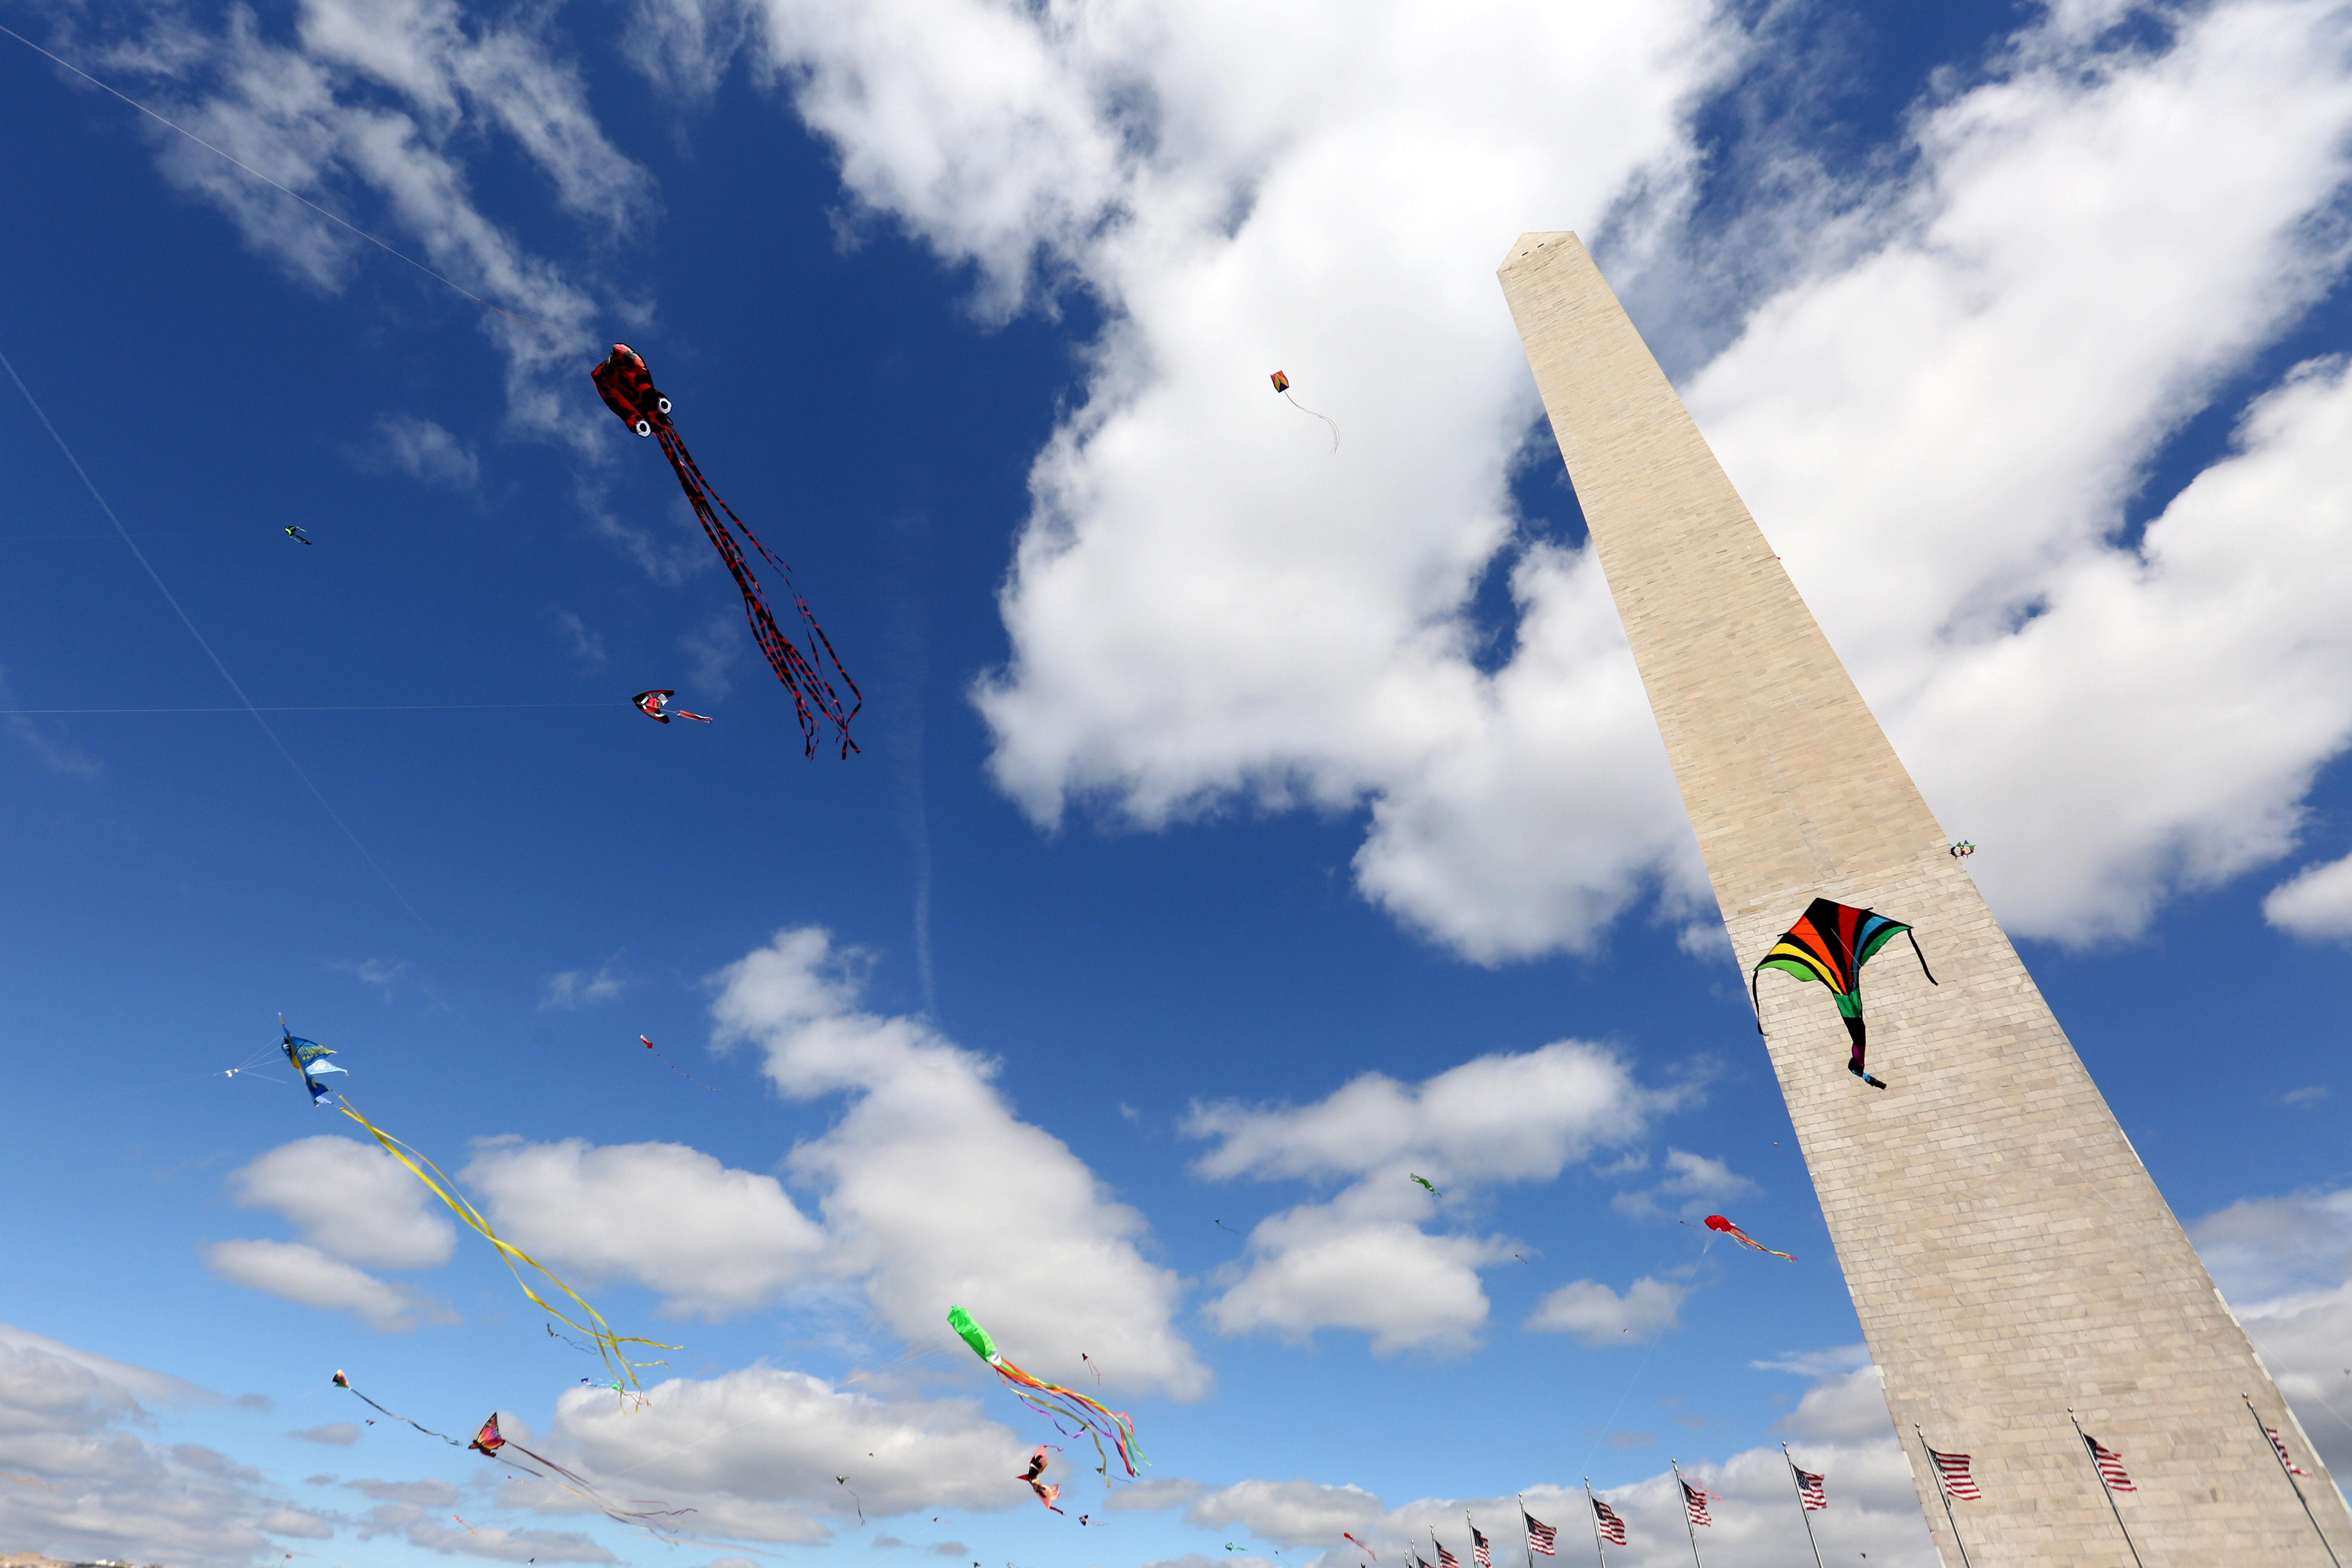 April, 2017. Kites fly over the National Mall on April Fool's Day.{&amp;nbsp;} (Amanda Andrade-Rhoades/DC Refined)<p></p>